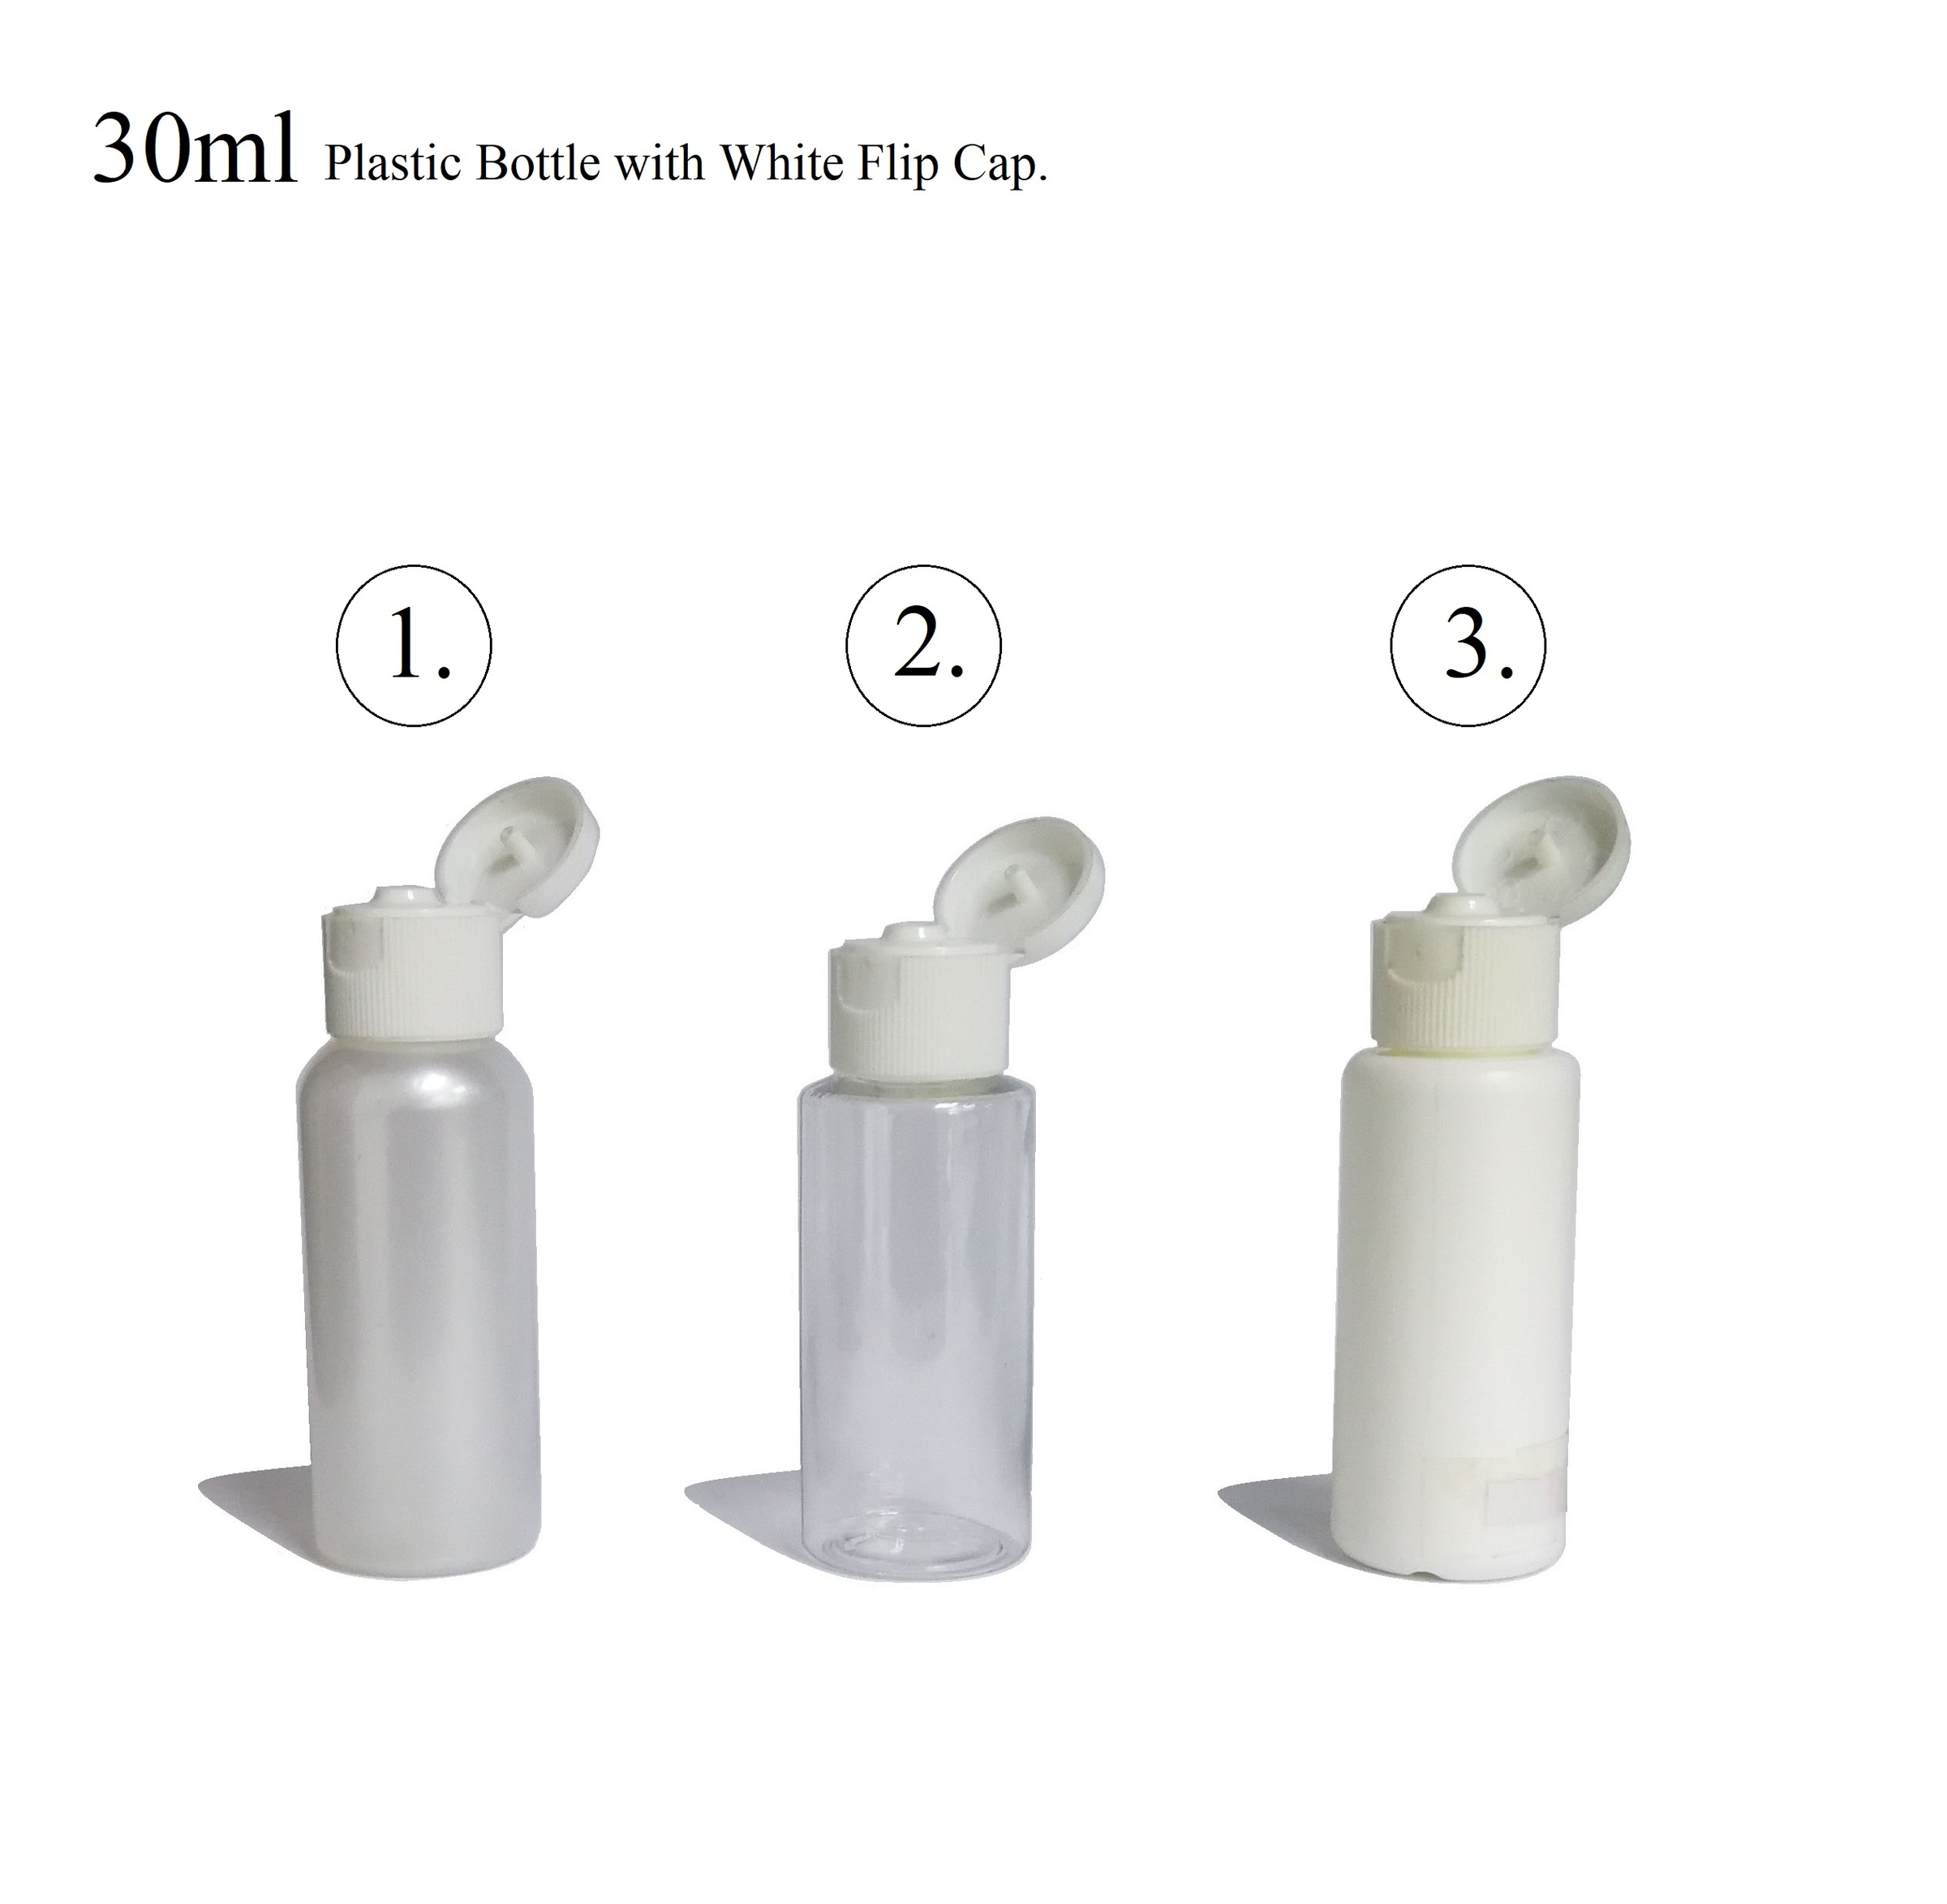 30ml Plasic Btl (Flip Cap).jpg